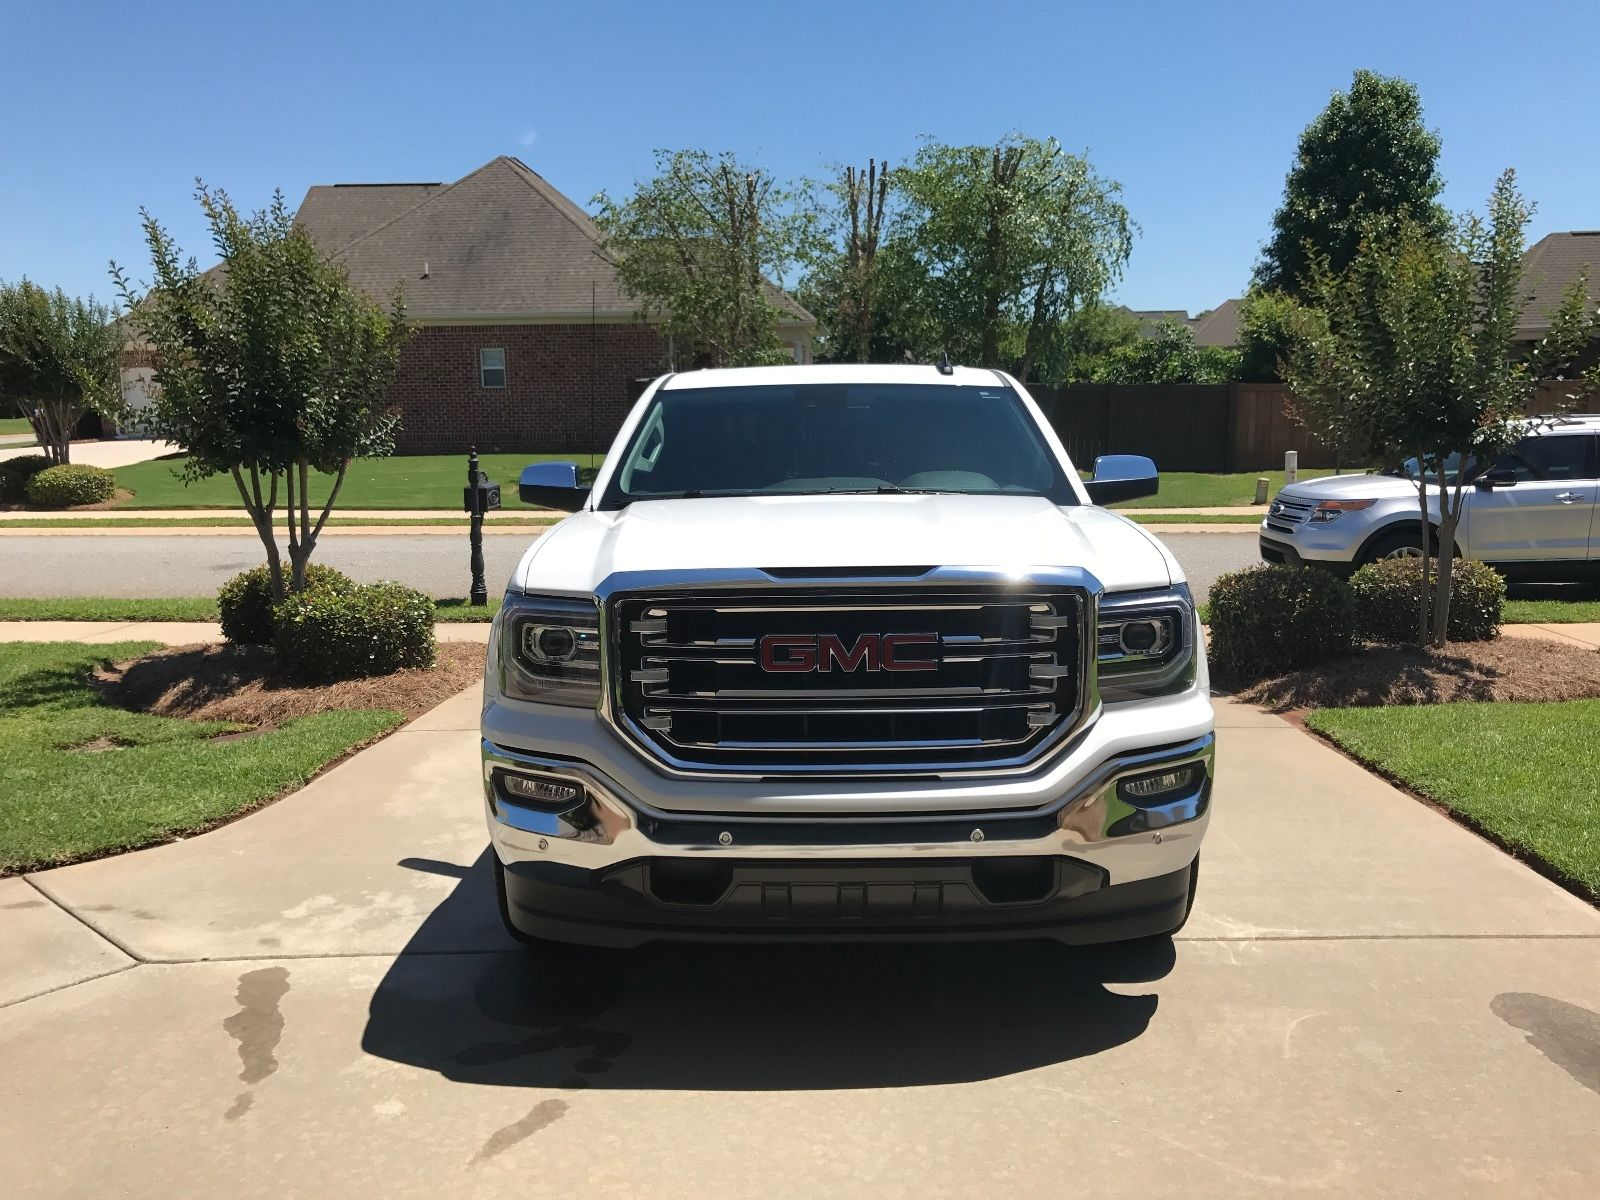 Every option available 2016 GMC Sierra 1500 SLT pickup for